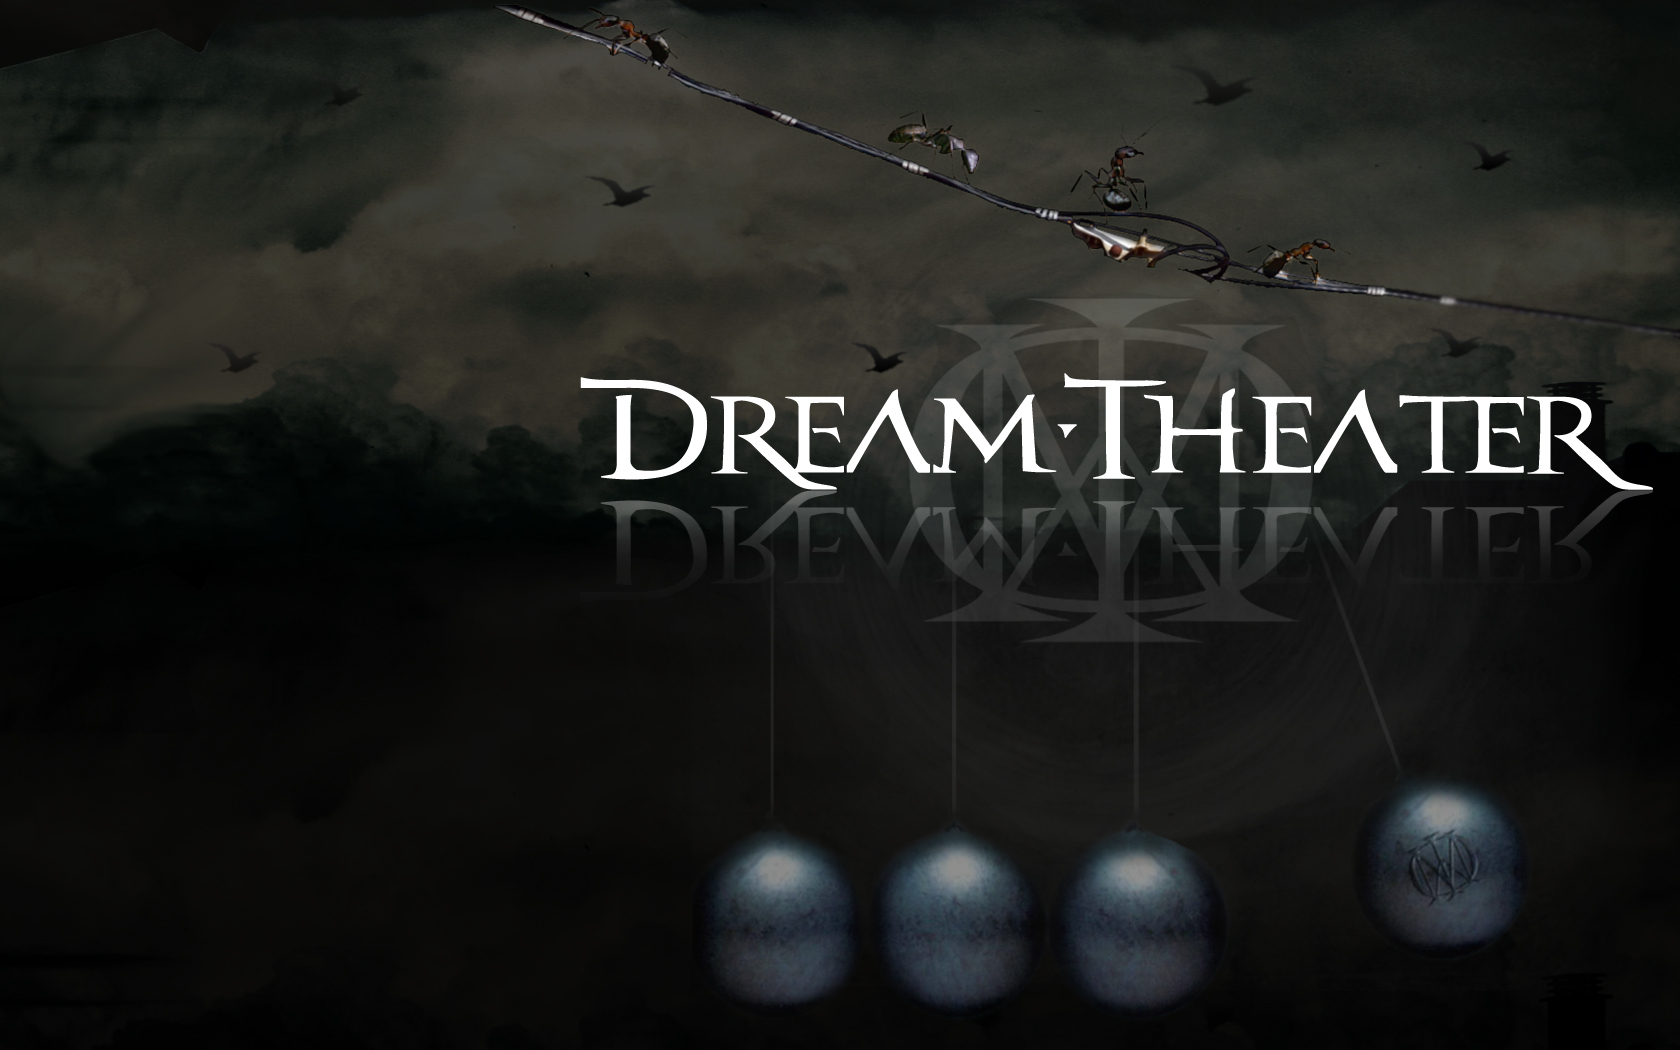 Dream Theater Wallpaper HD - WallpaperSafari